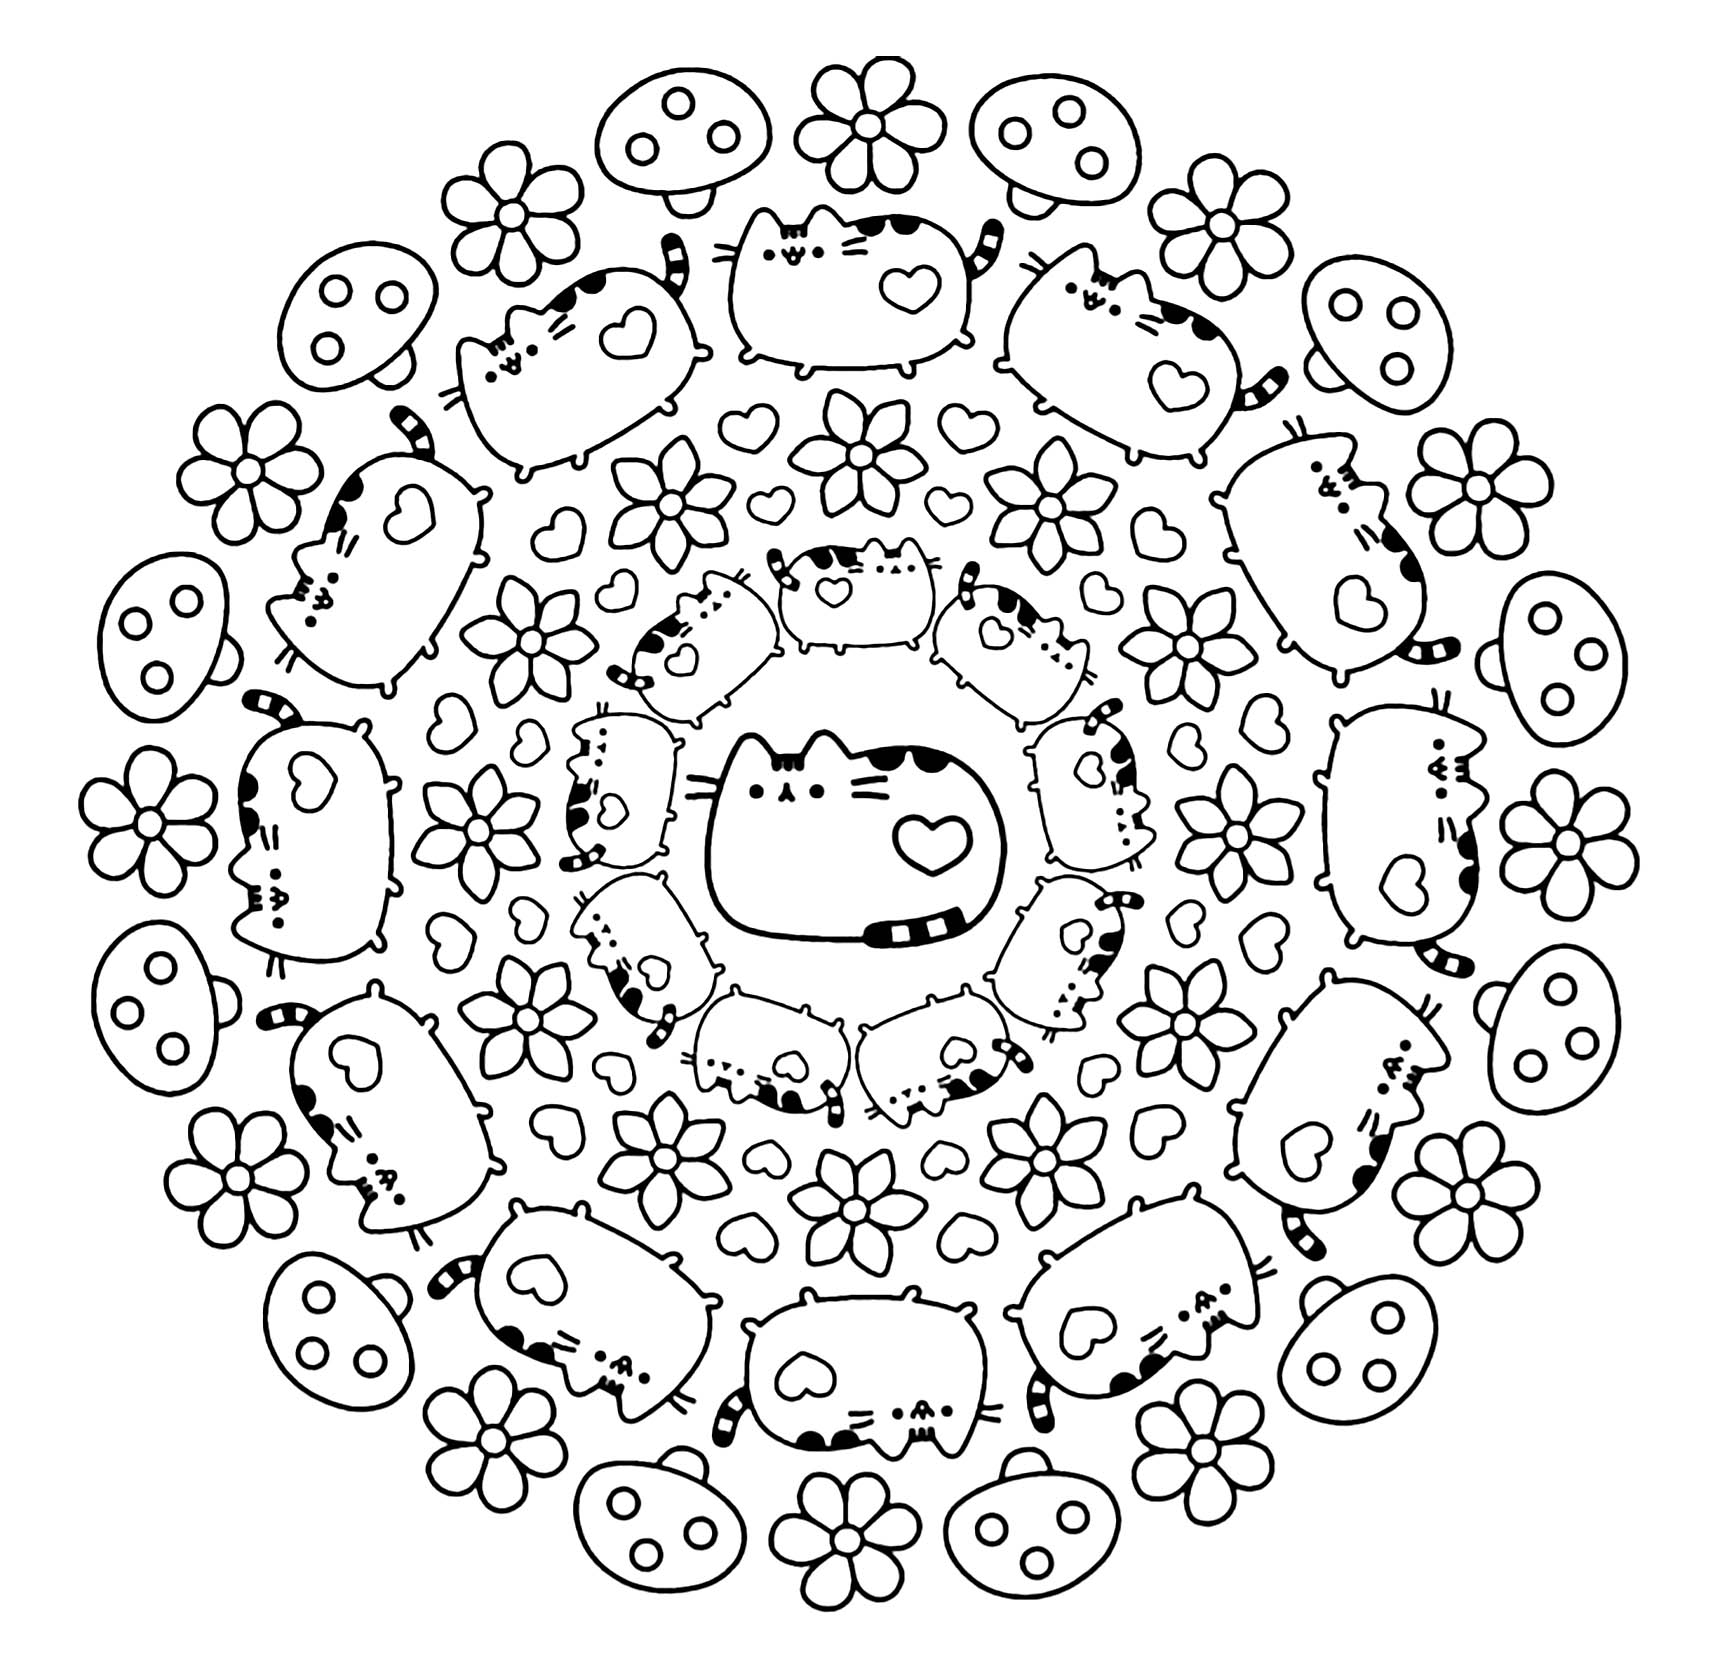 Coloring mandala pusheen cat kawaii